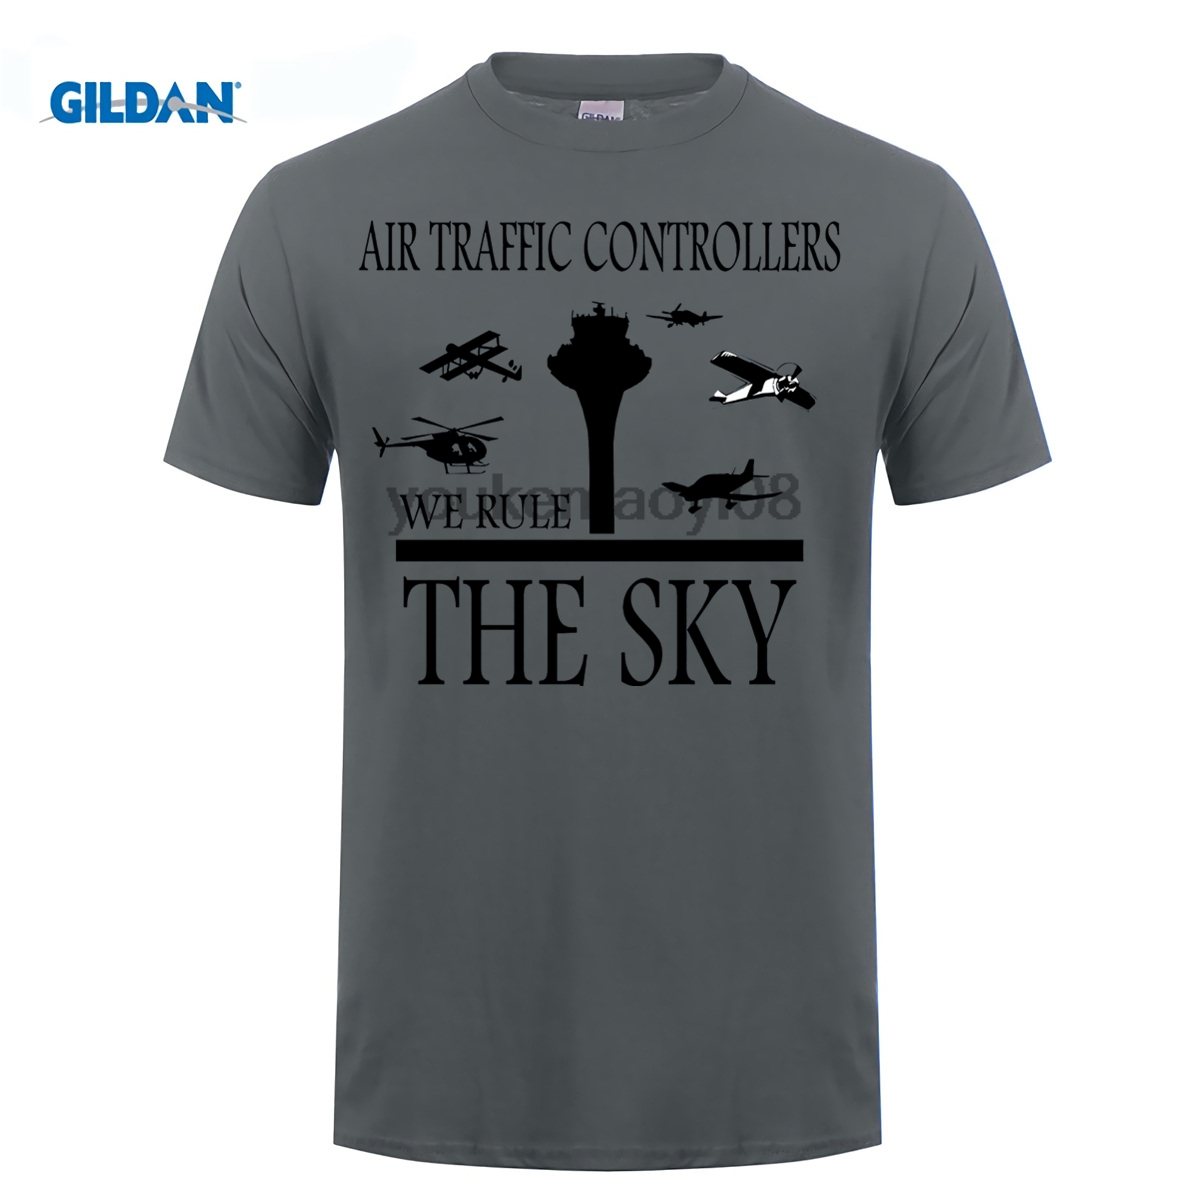 GILDAN 100% cotton O-neck printed T-shirt Aviation Air Traffic Controller ATC T-Shirt ...